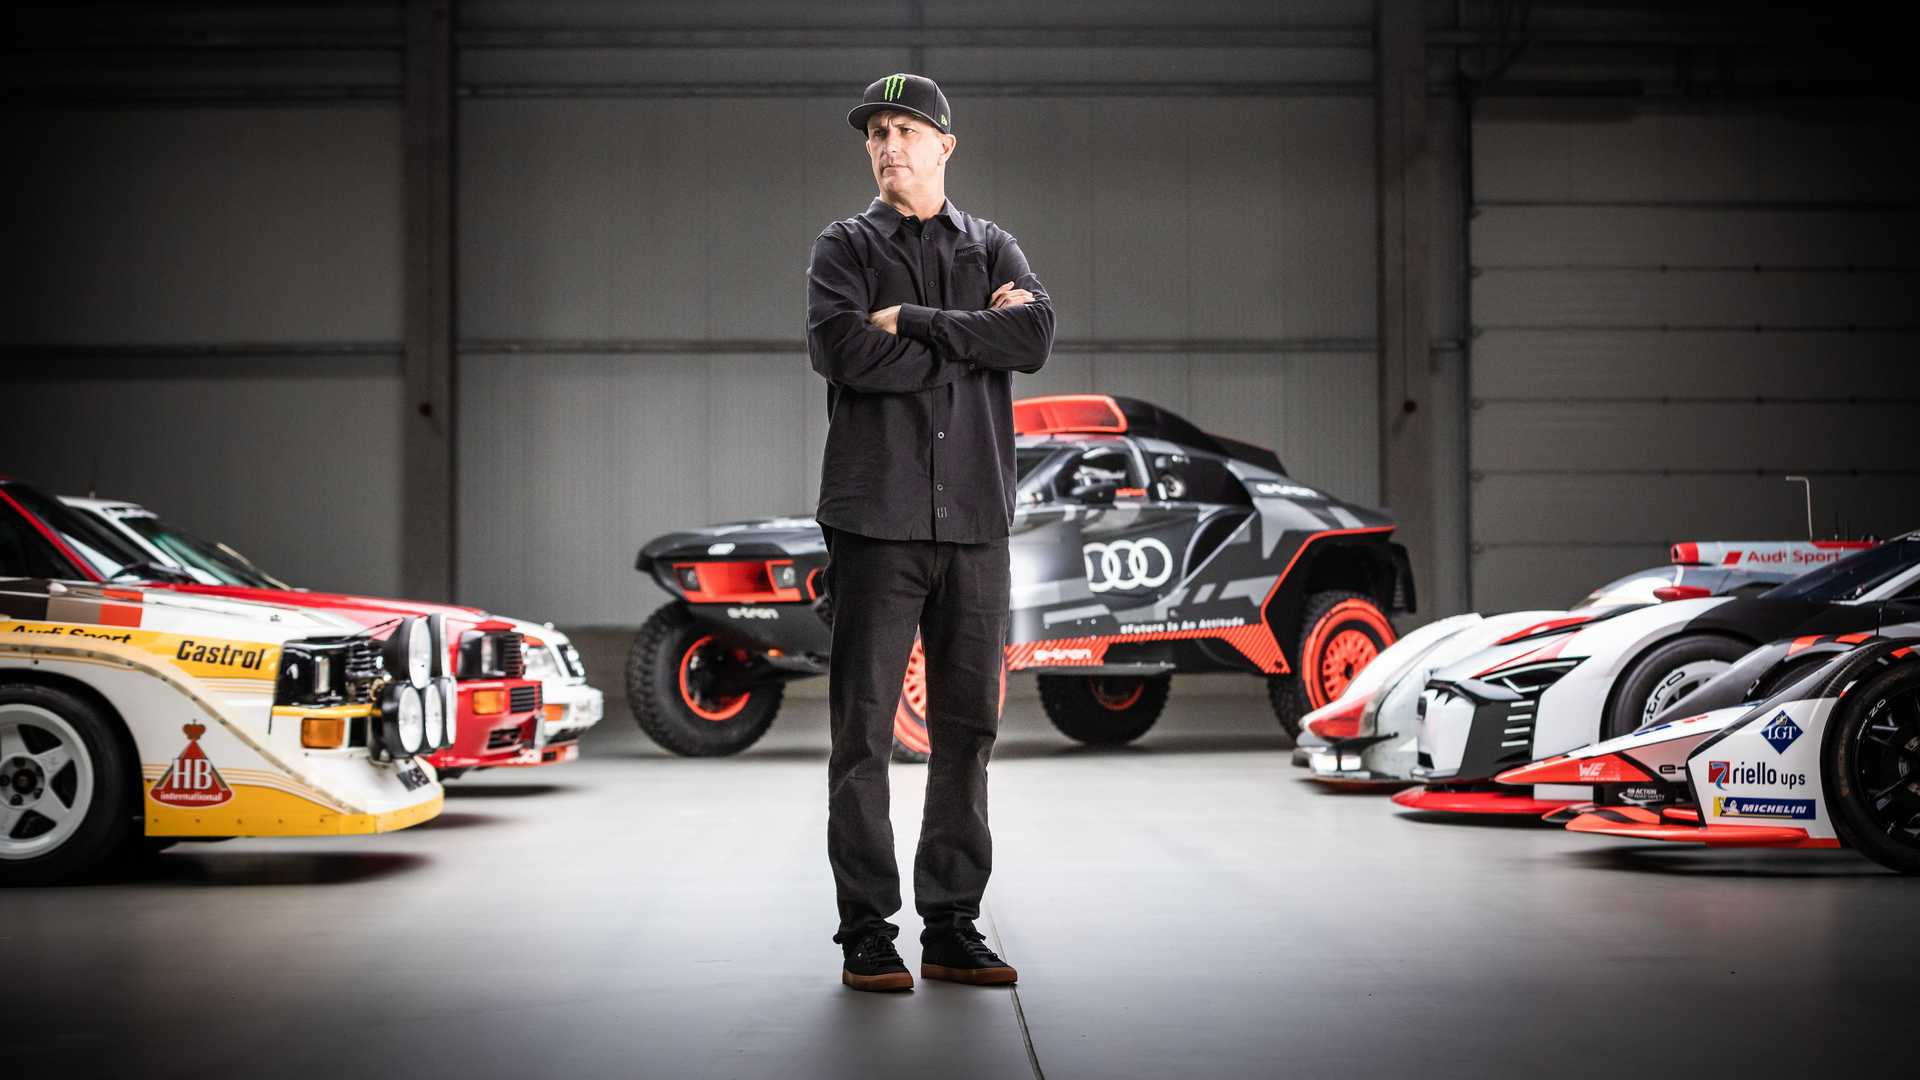 Ken Block was the face of the Gymkhana show since its launch, so no one knew where fate would take him next when he announced a breakup with Ford in early 2021. A couple weeks ago, the stunt driver announced a partnership with Audi, and today, we have finally learned some of the details.